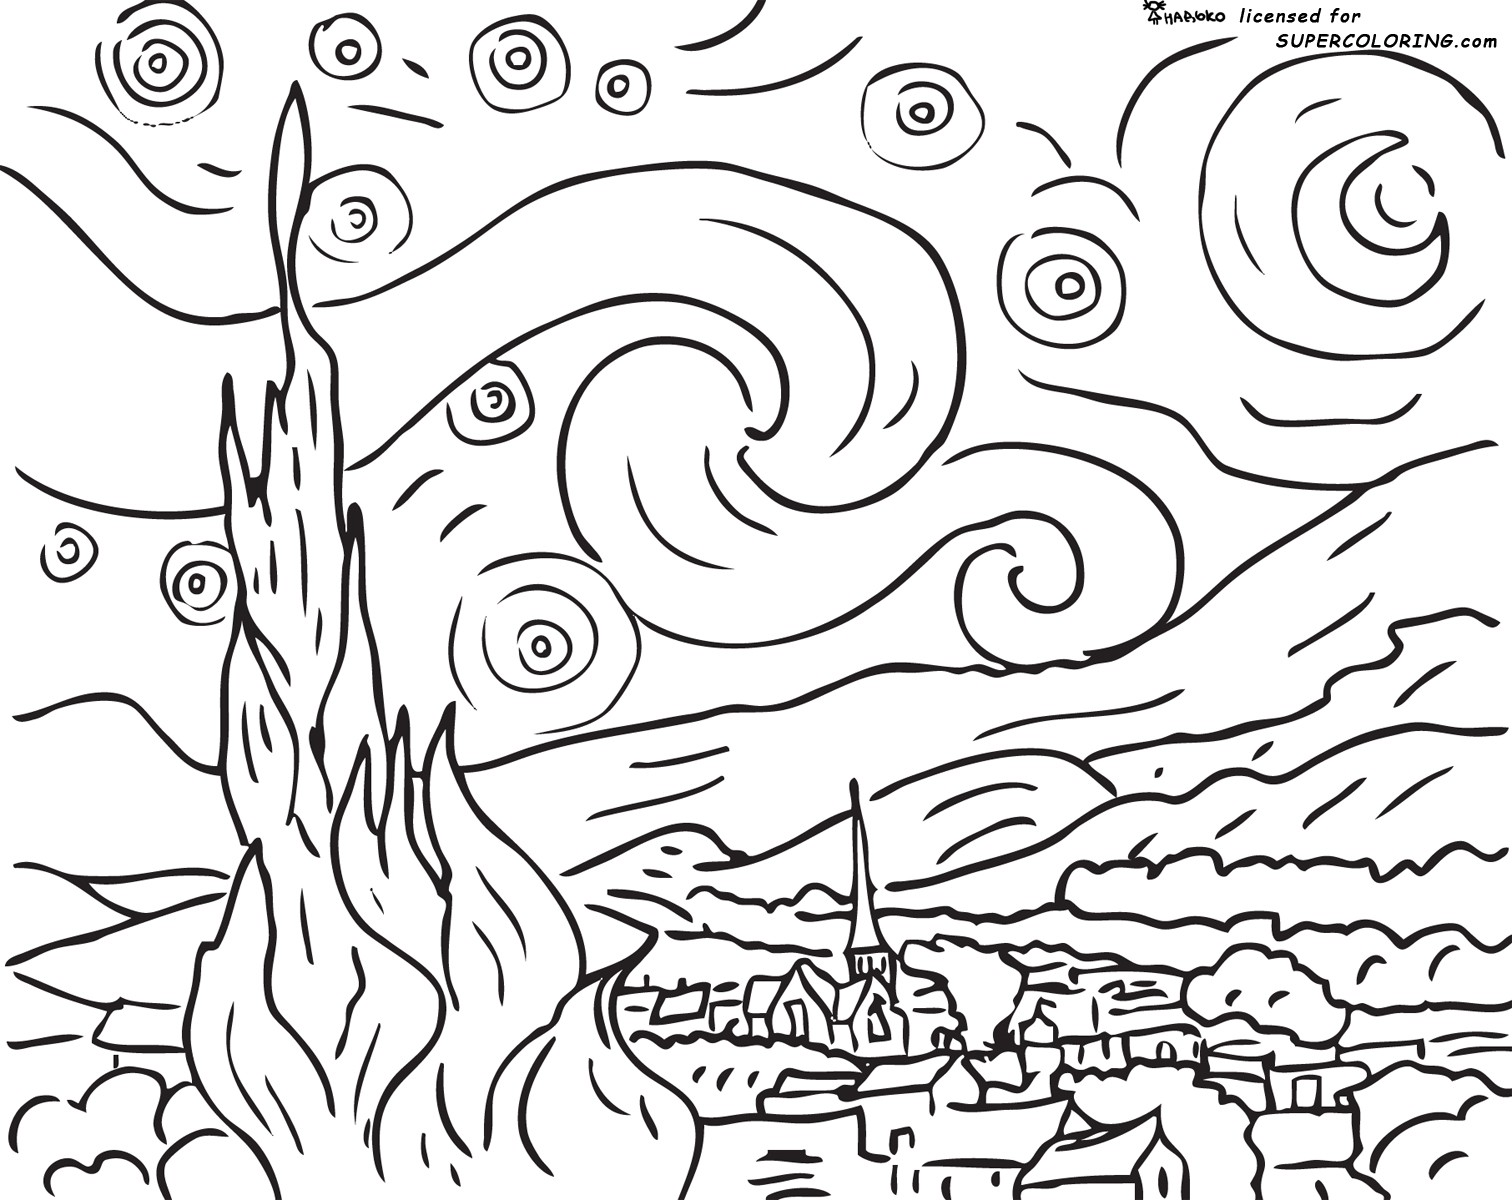 Cool Teenage Coloring Pages at GetDrawings.com | Free for ...